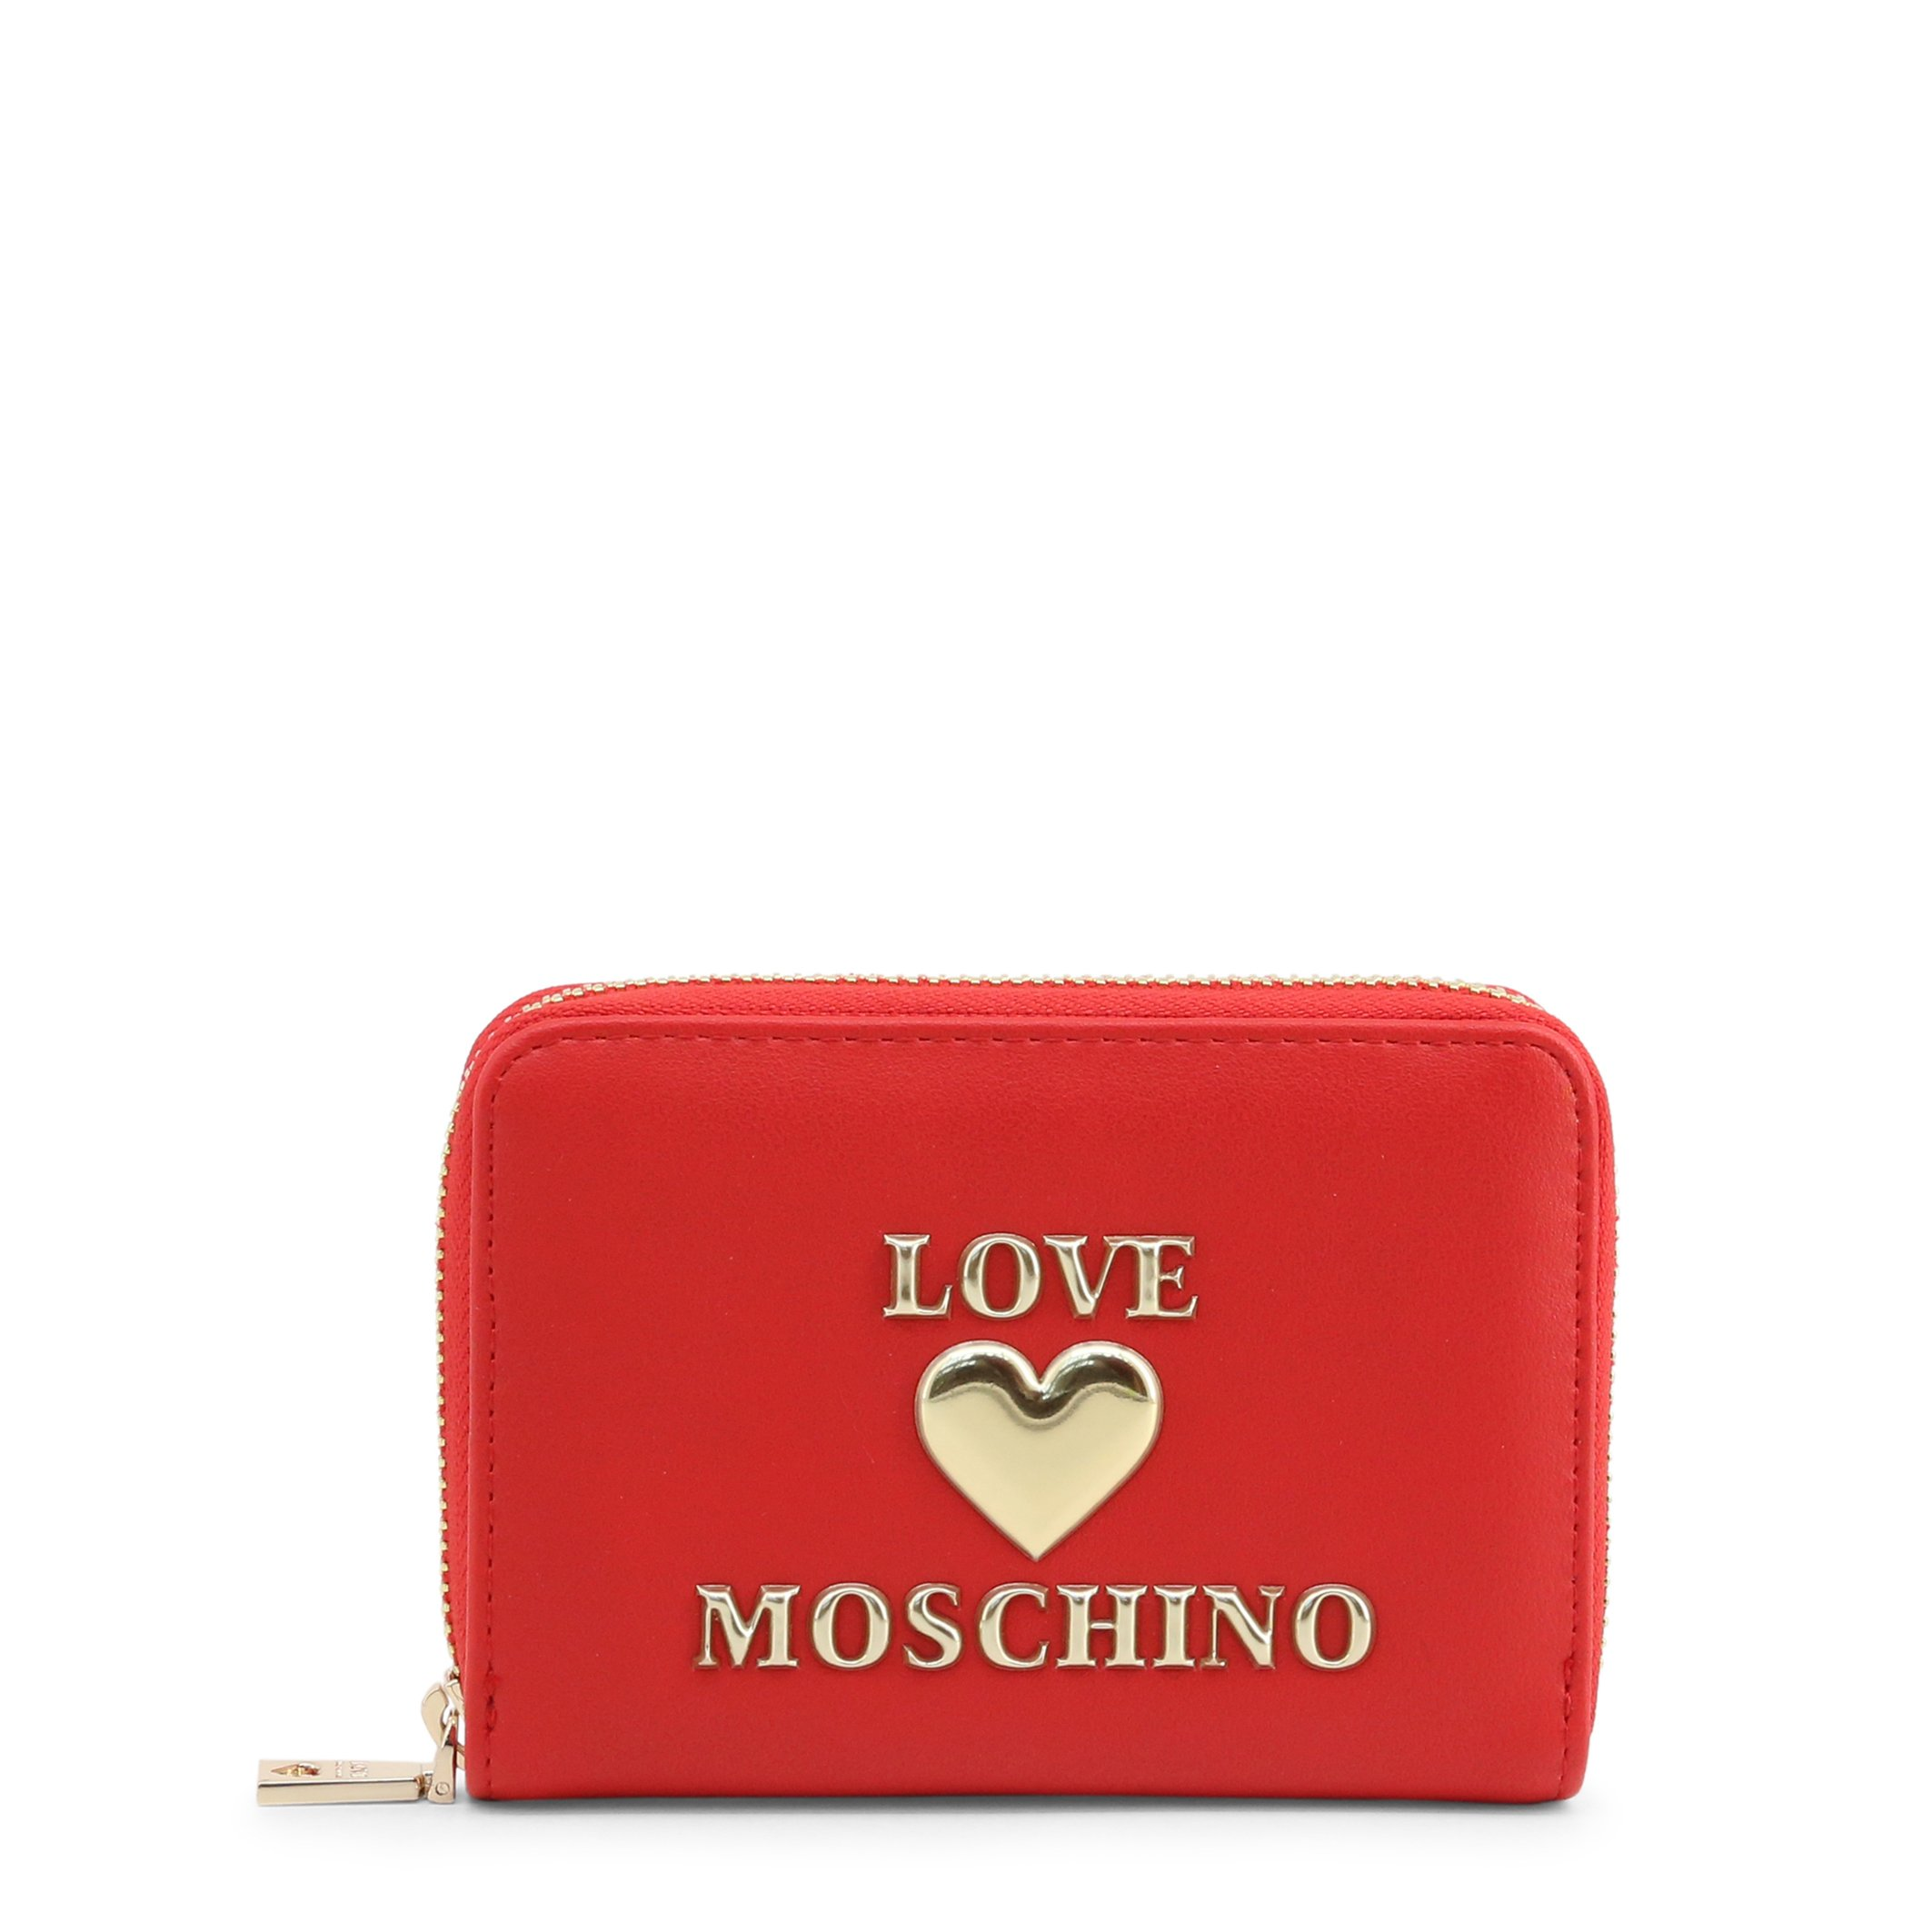 Love Moschino Women's Wallet Various Colours JC5610PP1BLE - red NOSIZE